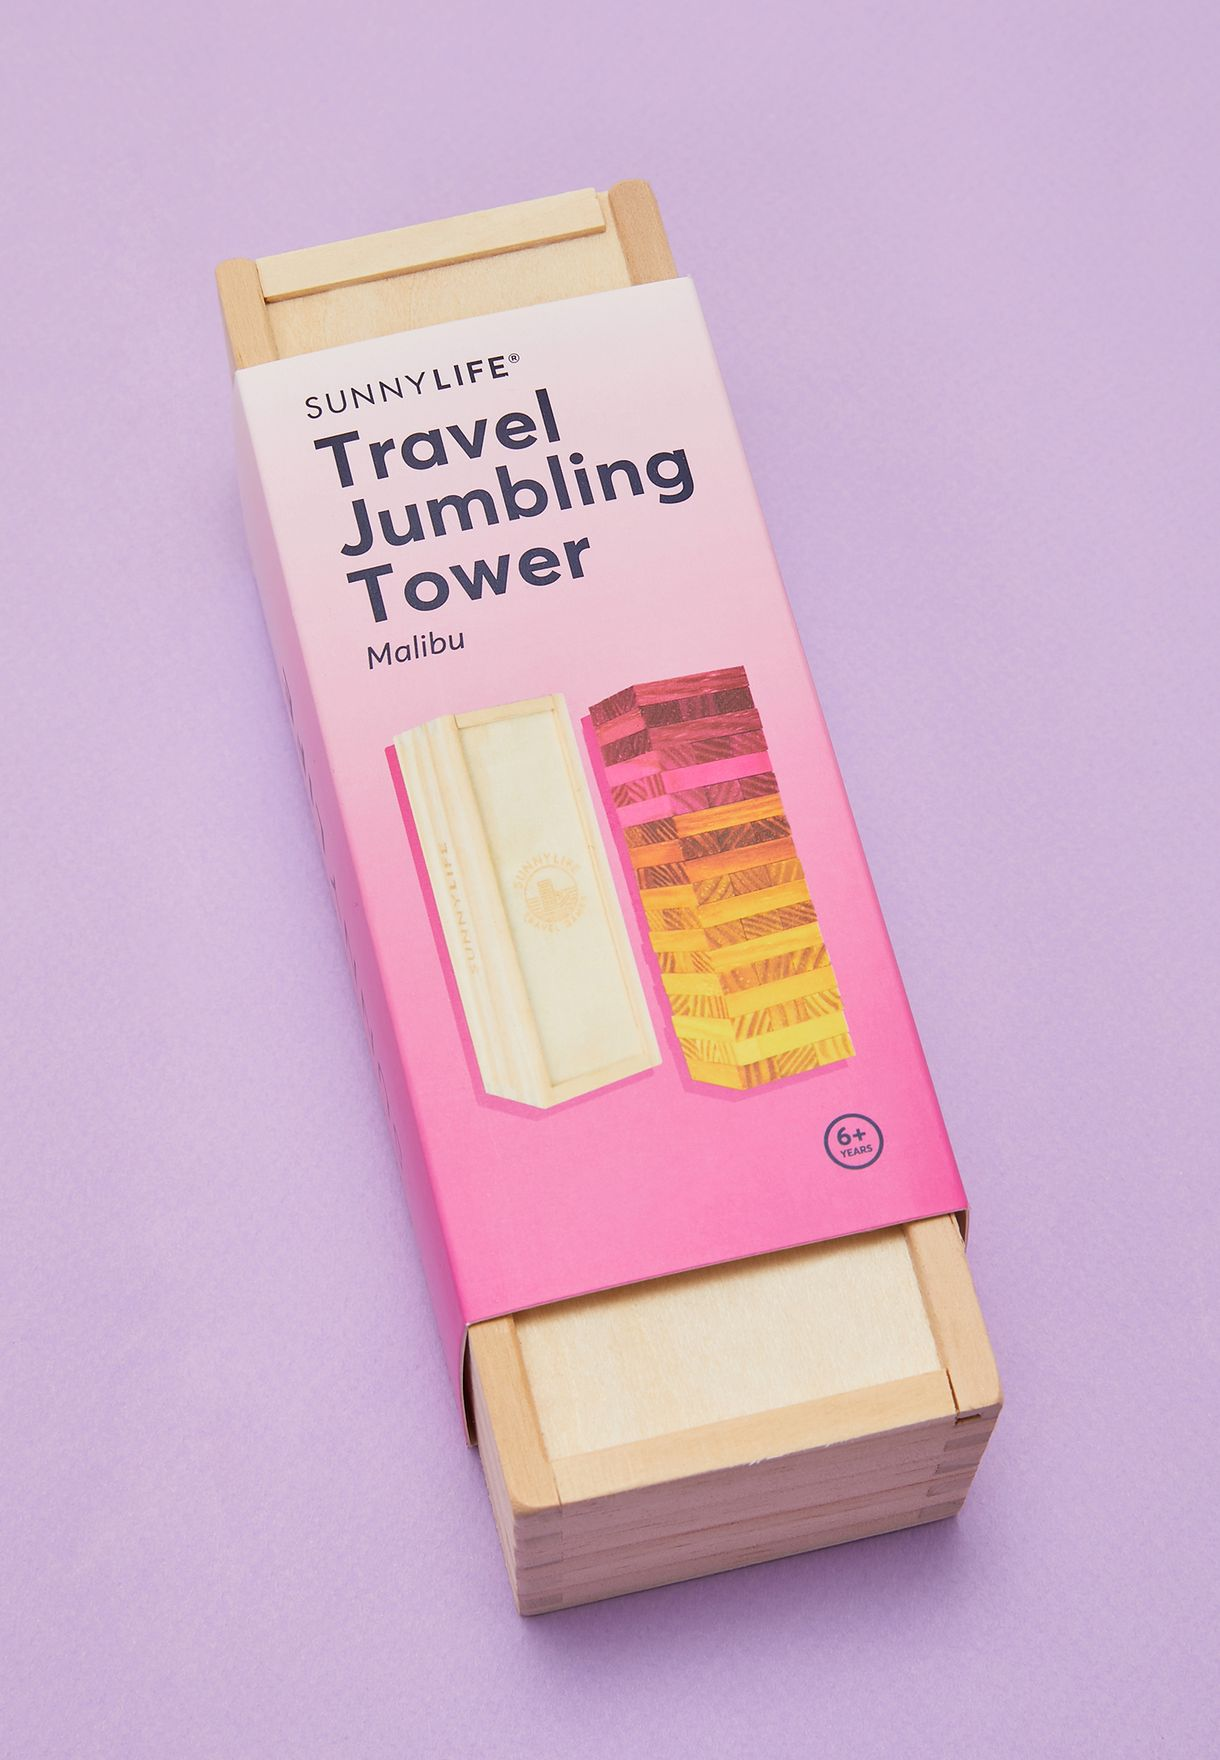 Travel Jumbling Tower